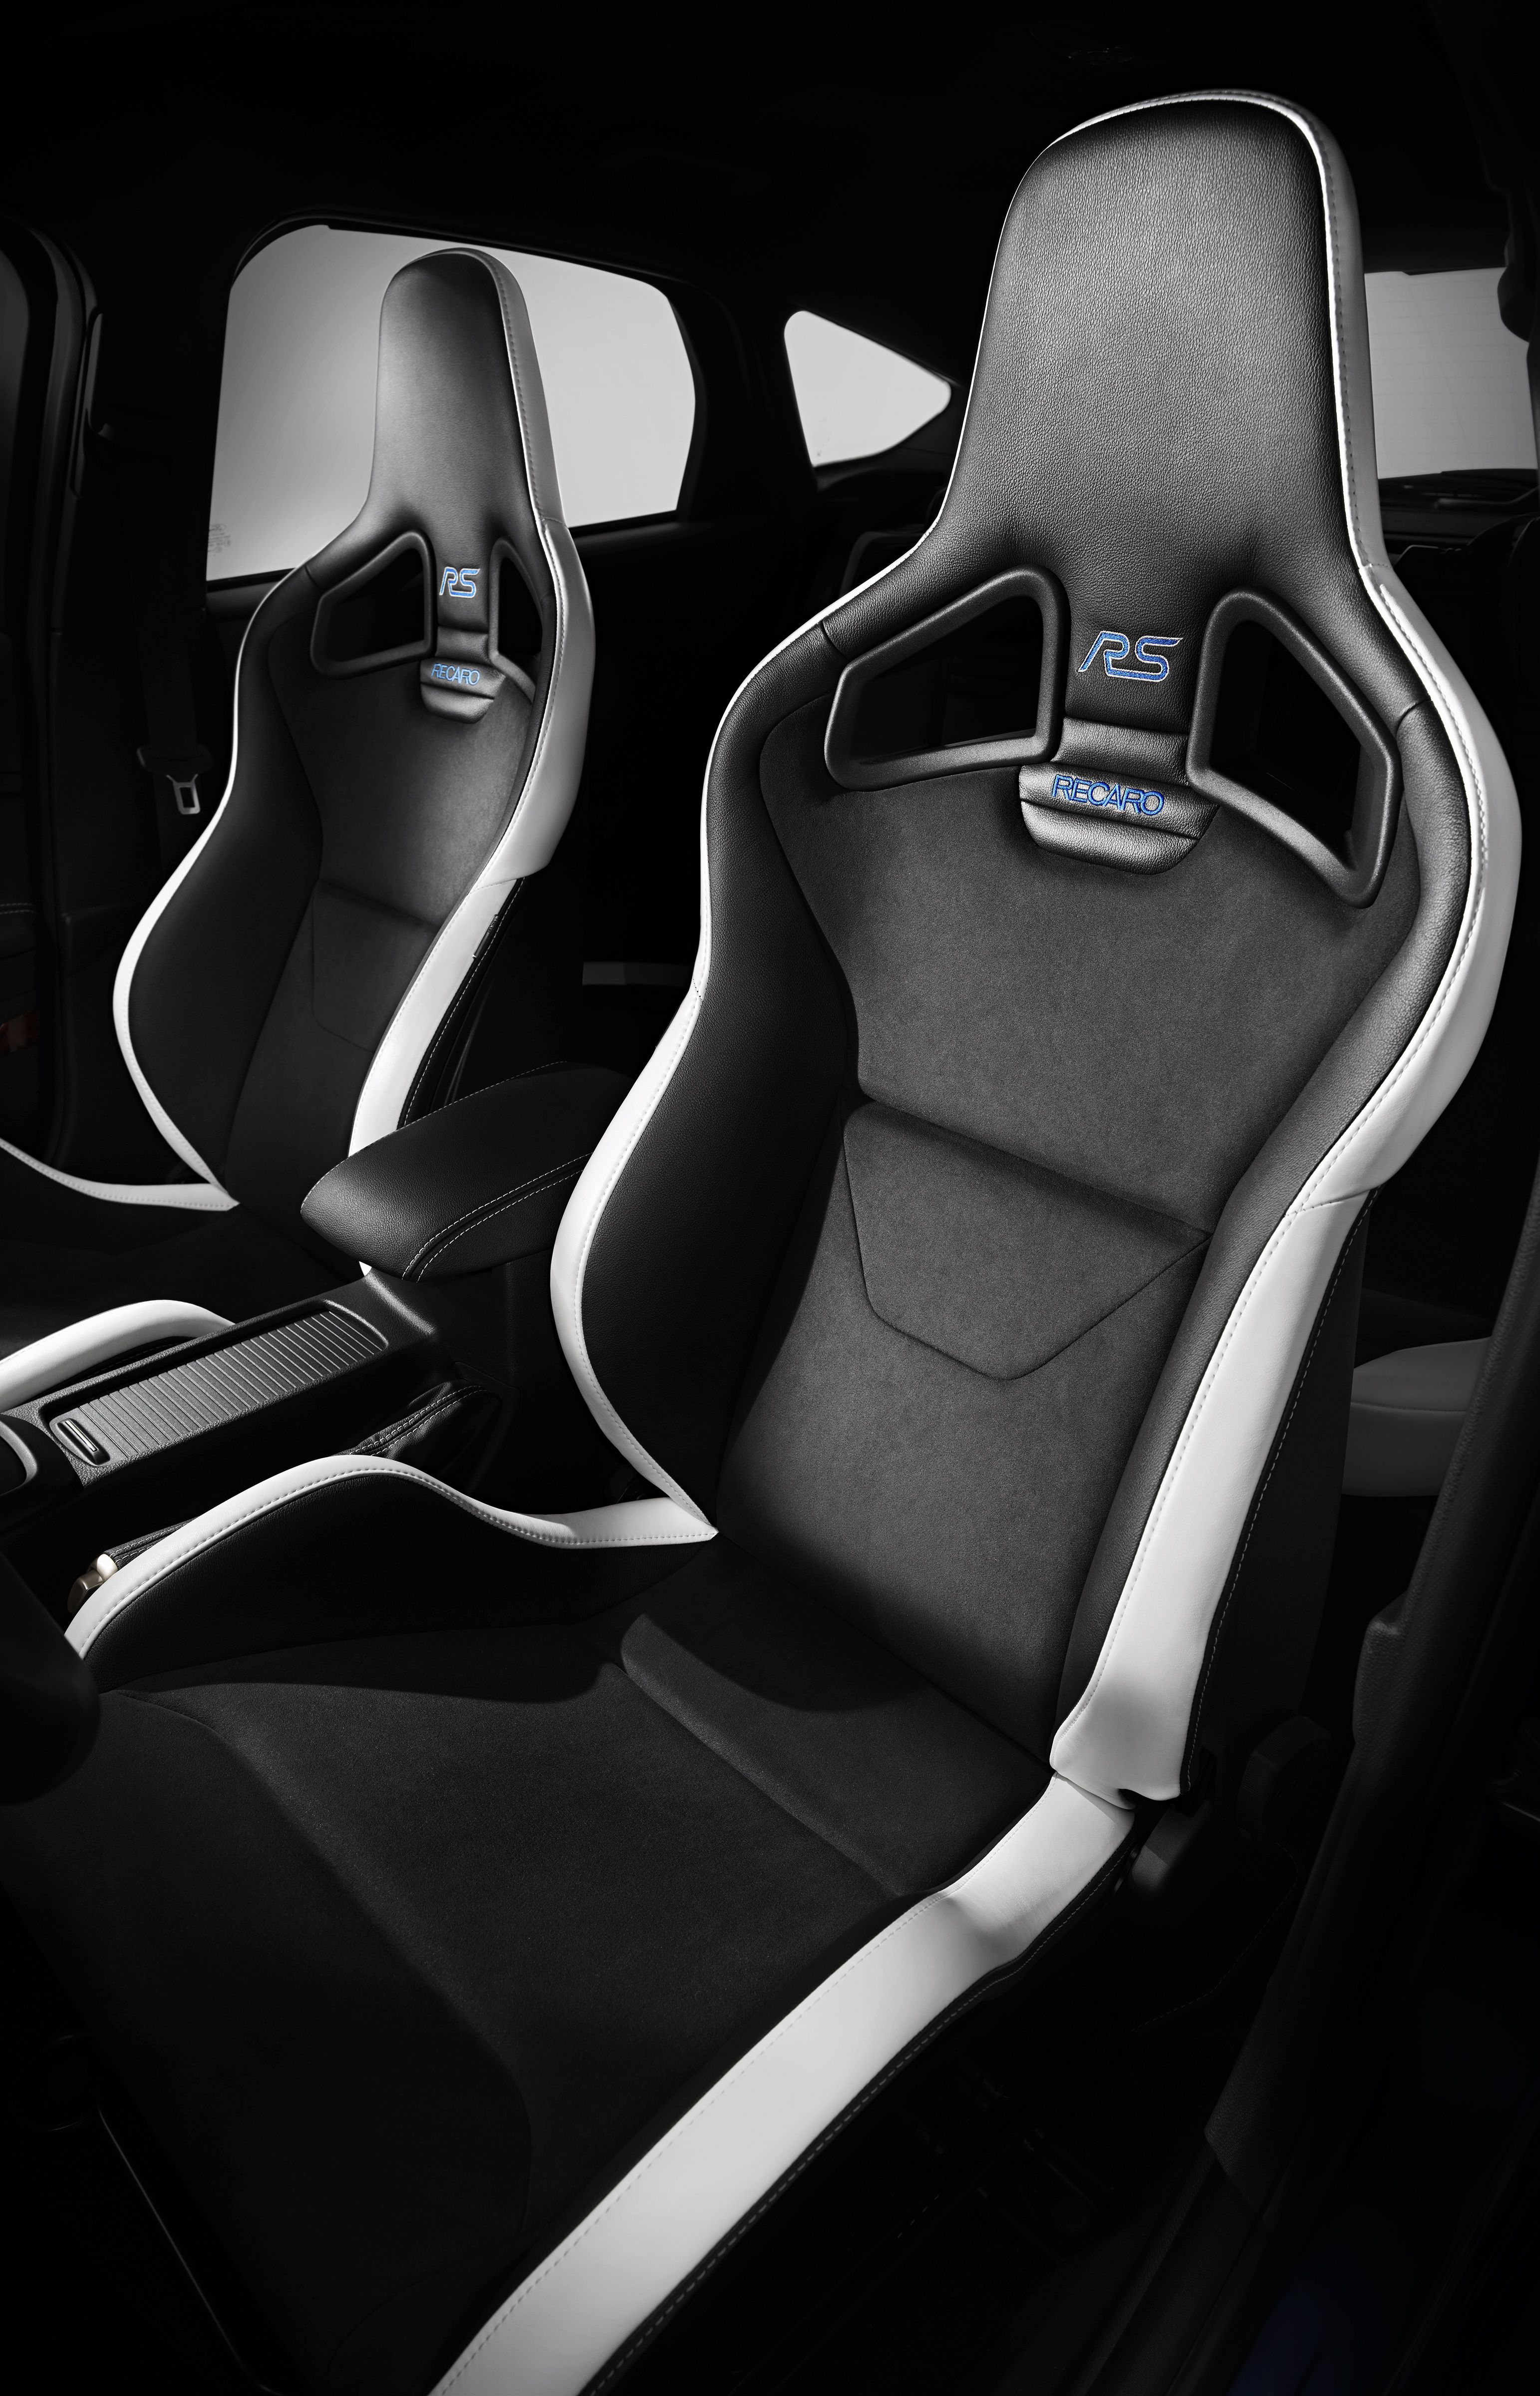 2016 Ford Focus Rs Prototype Front Recaro Seats For Europe Only Prototype Pre Production Focusrs Ford Focus Rs Focus Rs Ford Focus Rs 2016